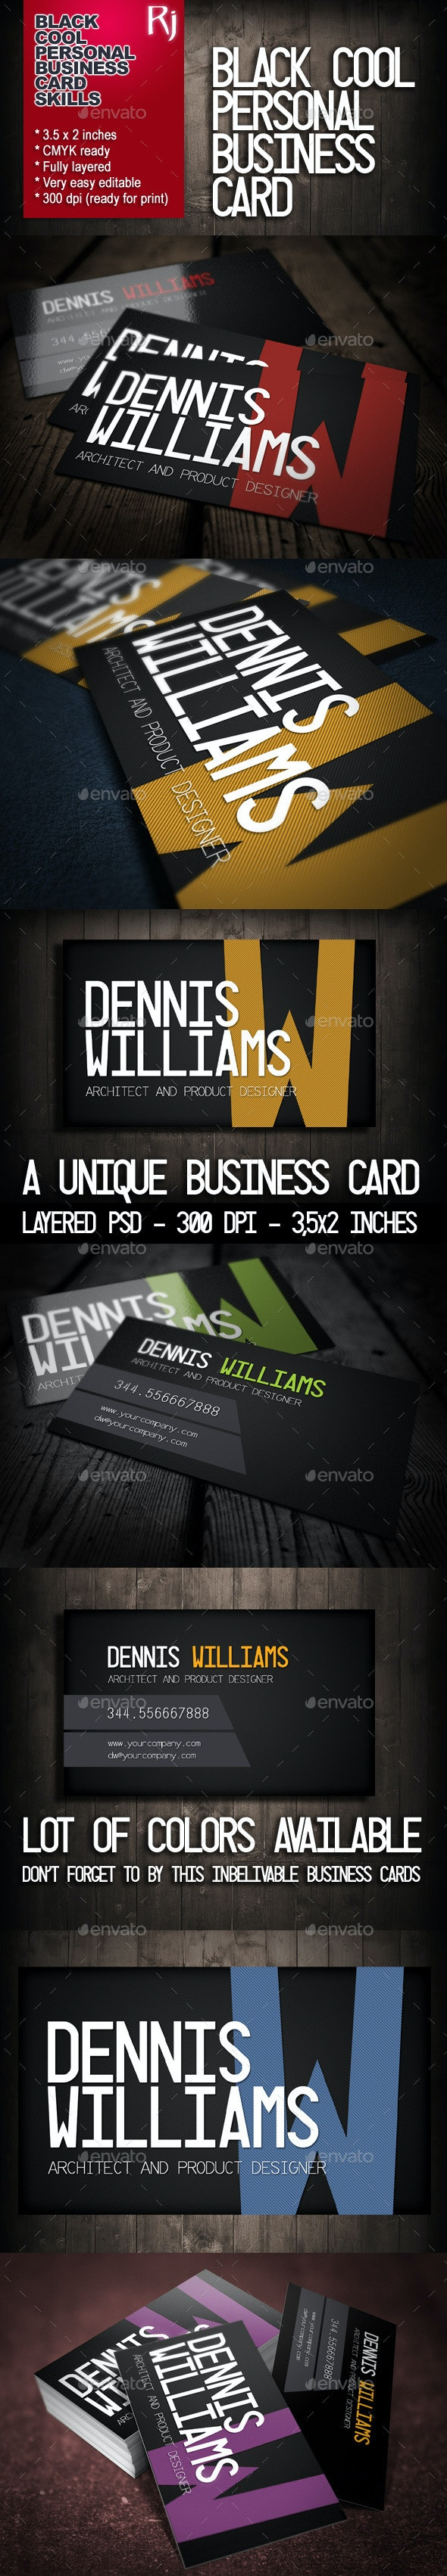 Black Cool Personal Business Card - Corporate Business Cards